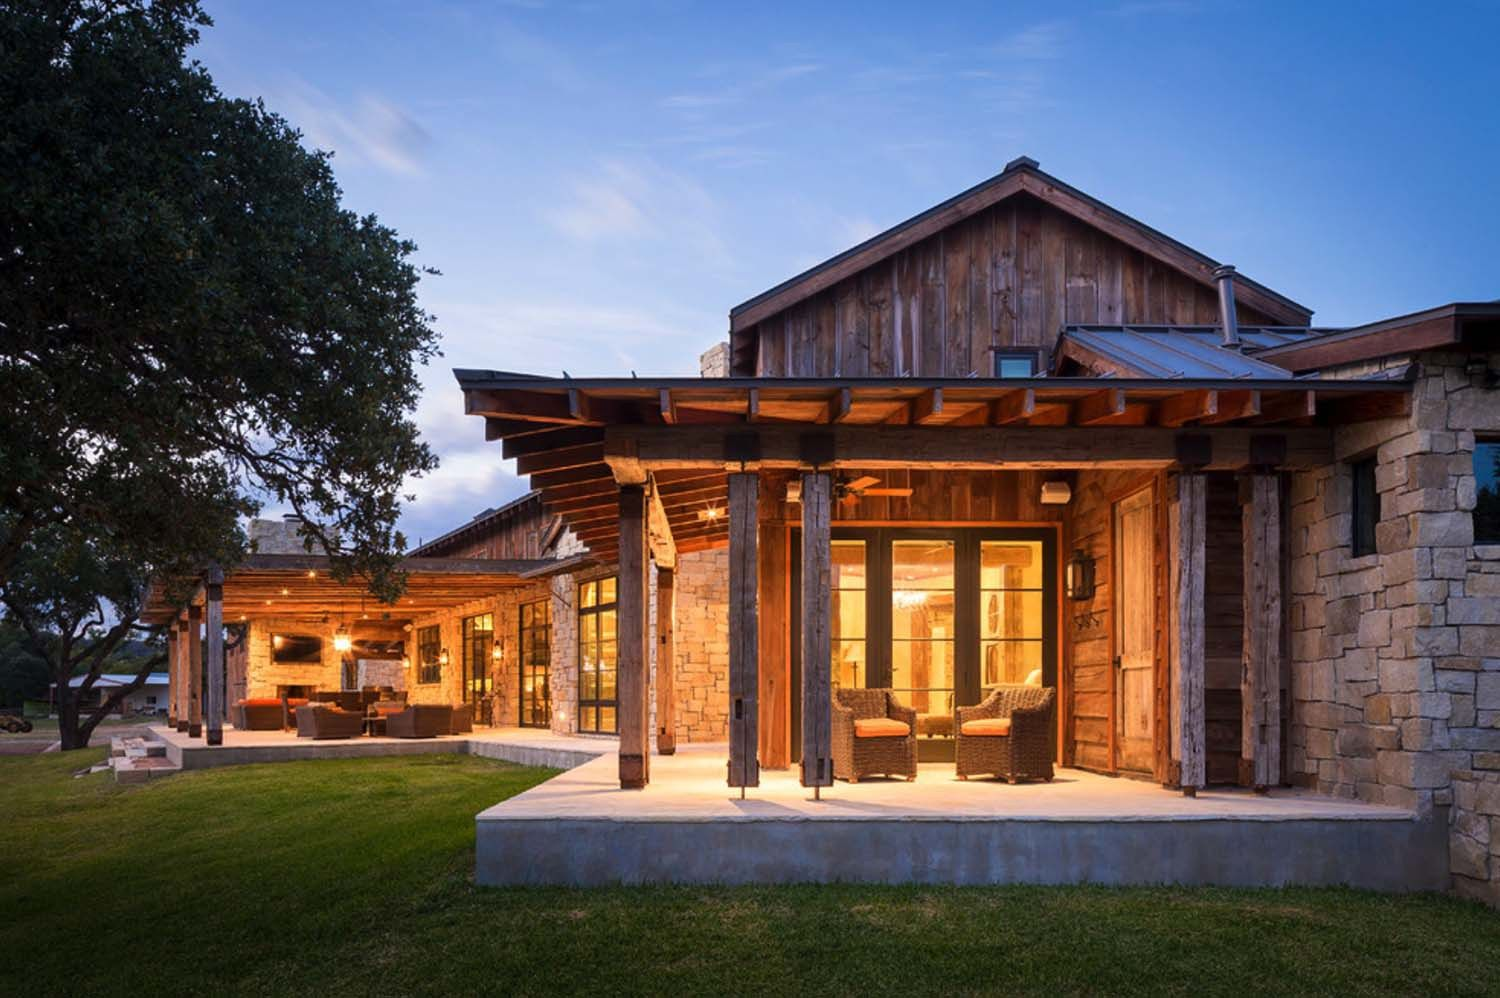 Ranch Home Cornerstone Architects 01 1 Kindesign Ranch House Designs Ranch Style Homes Rustic Houses Exterior